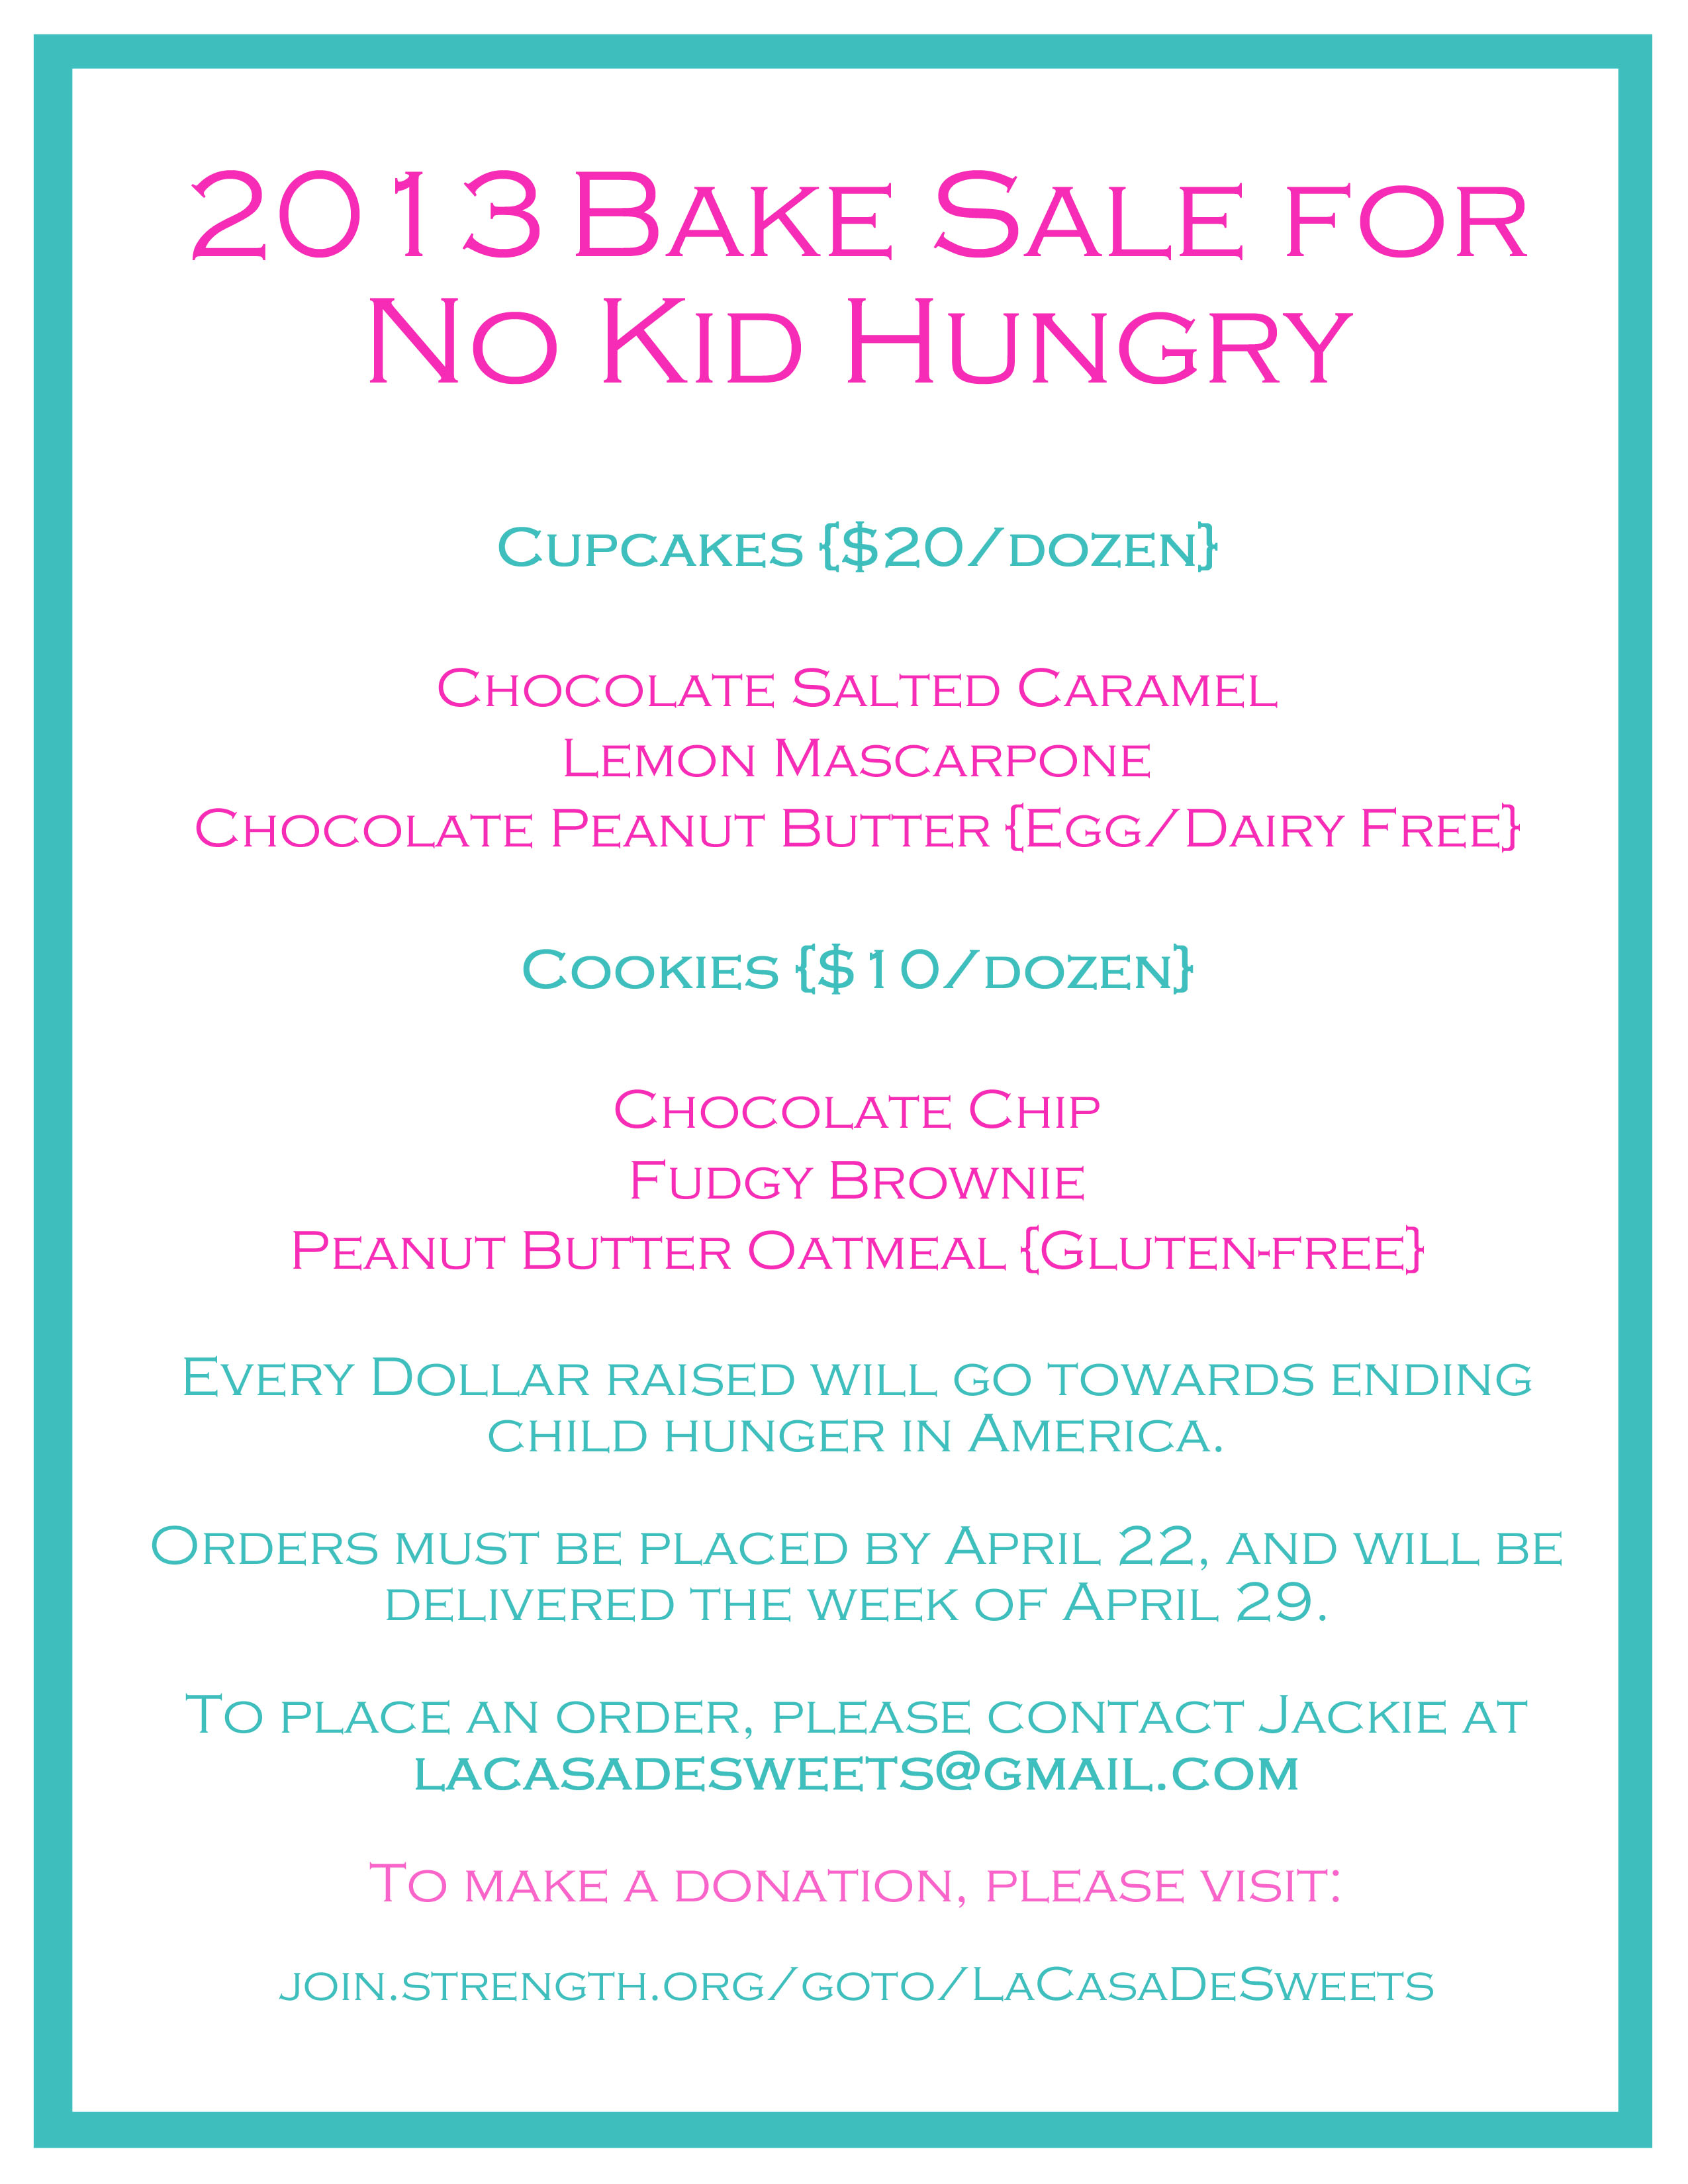 2013 No Kid Hungry Bake Sale Flyer